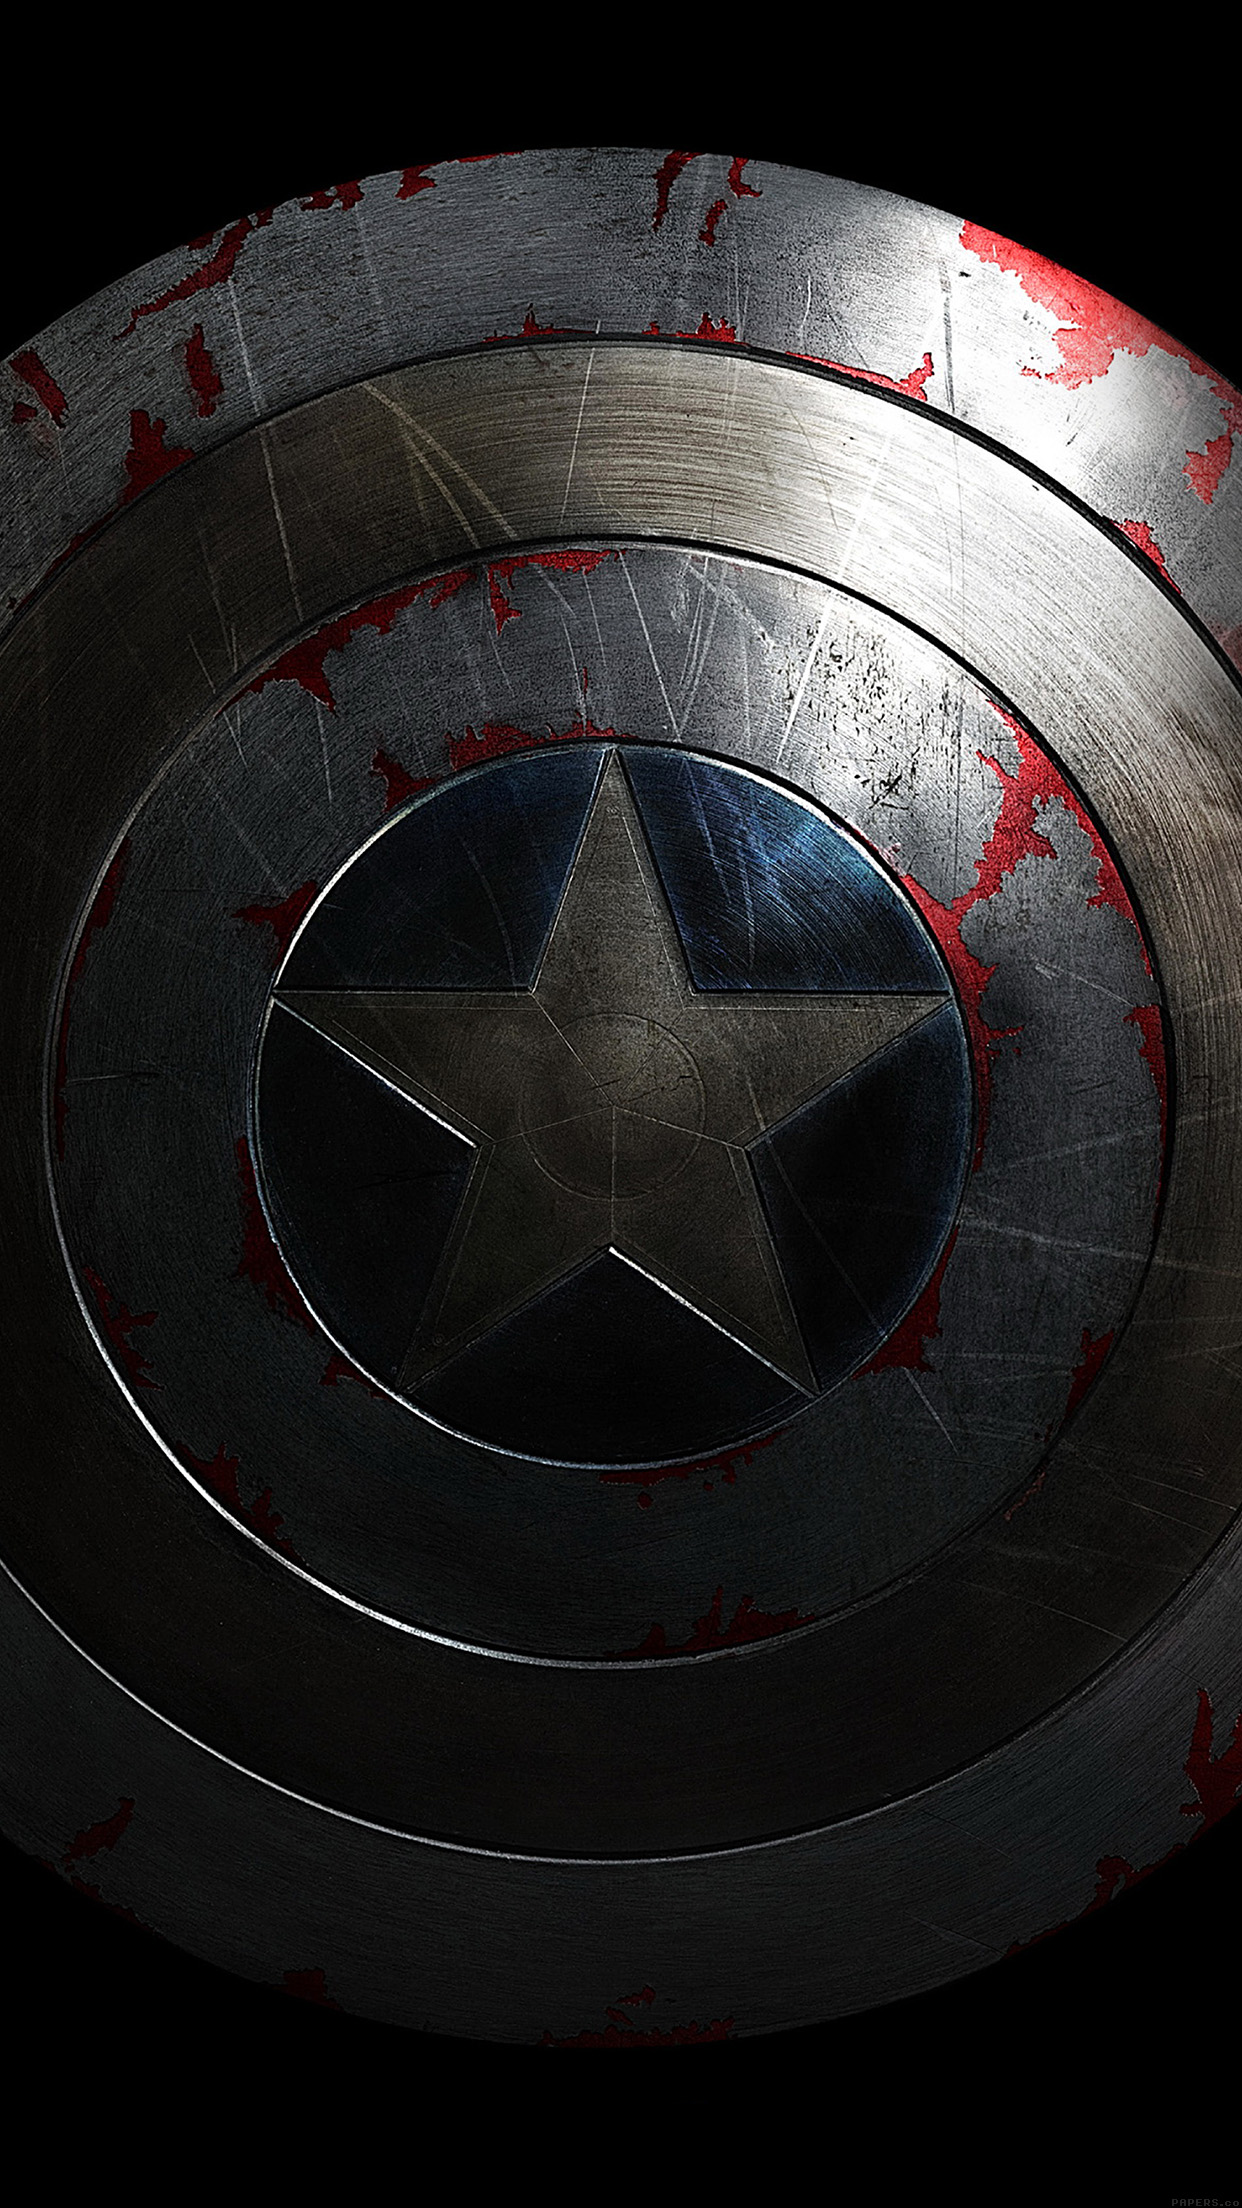 Hd Car Cell Phone Wallpaper Al84 Captain America Avengers Hero Sheild Art Dark Papers Co